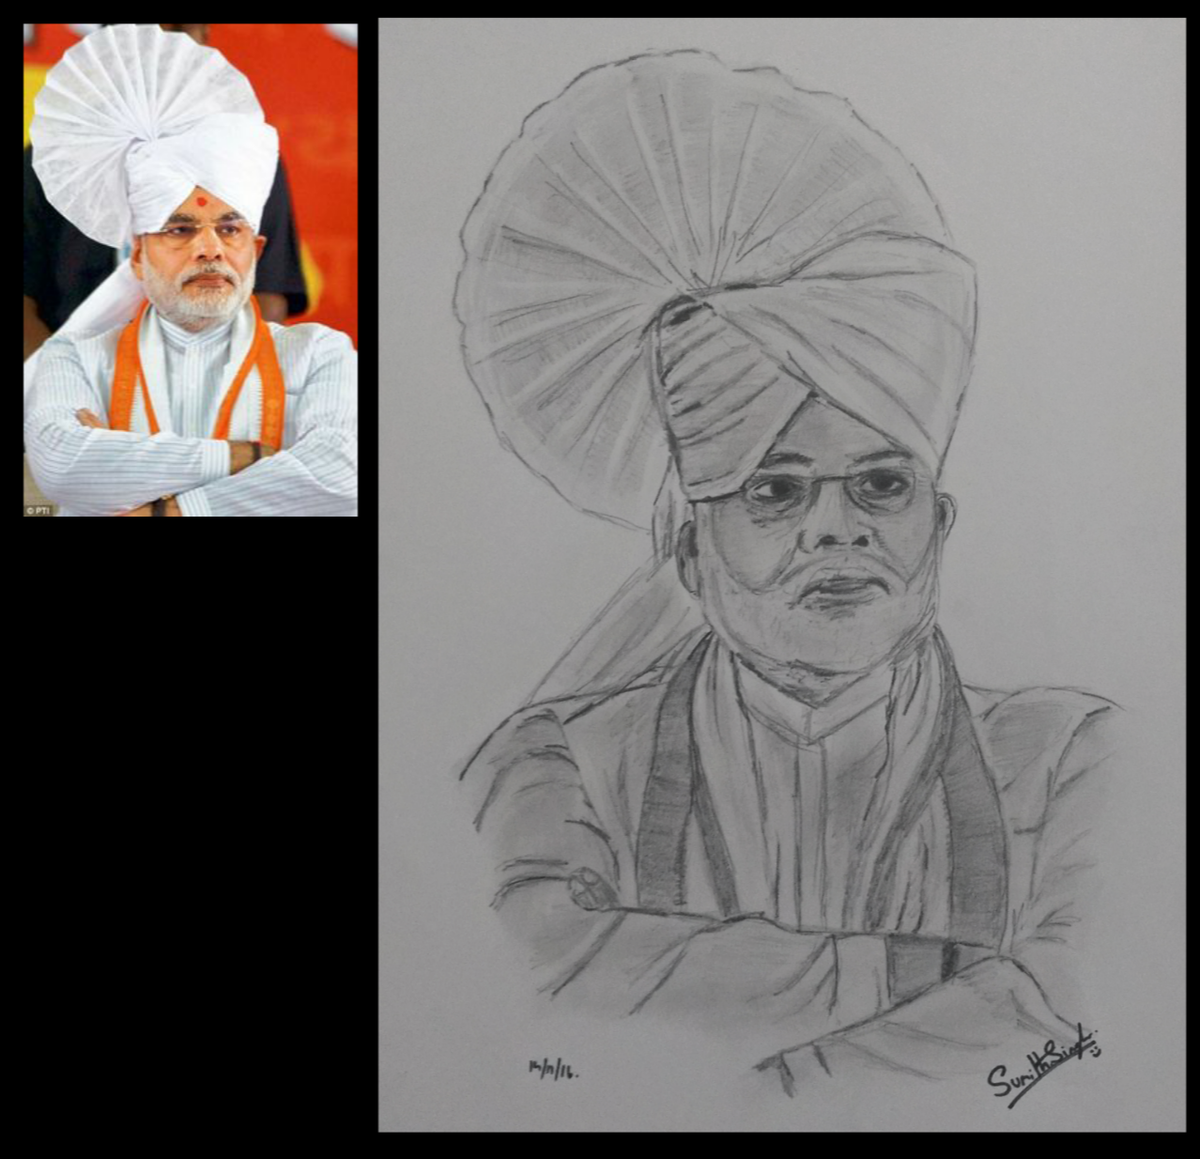 Sumith singala on twitter pencil sketch of pm modi